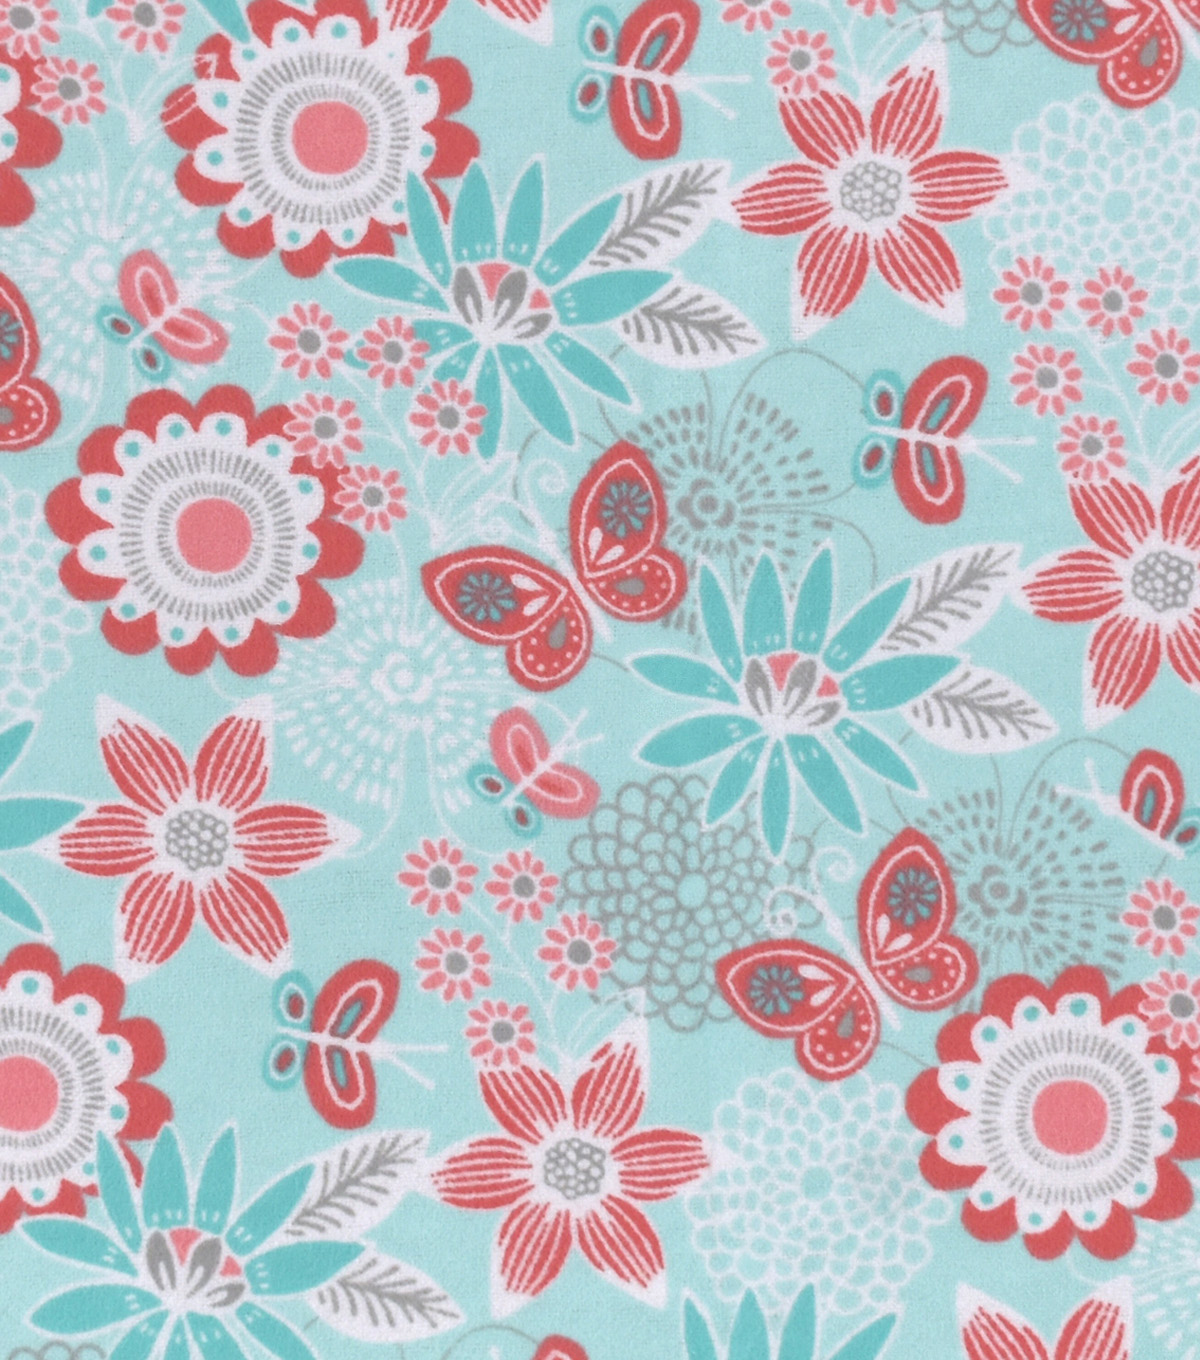 Mint and coral Gold Snuggle Flannel Fabric mint Coral Floral Joann Fabrics Snuggle Flannel Fabric mint Coral Floral Joann